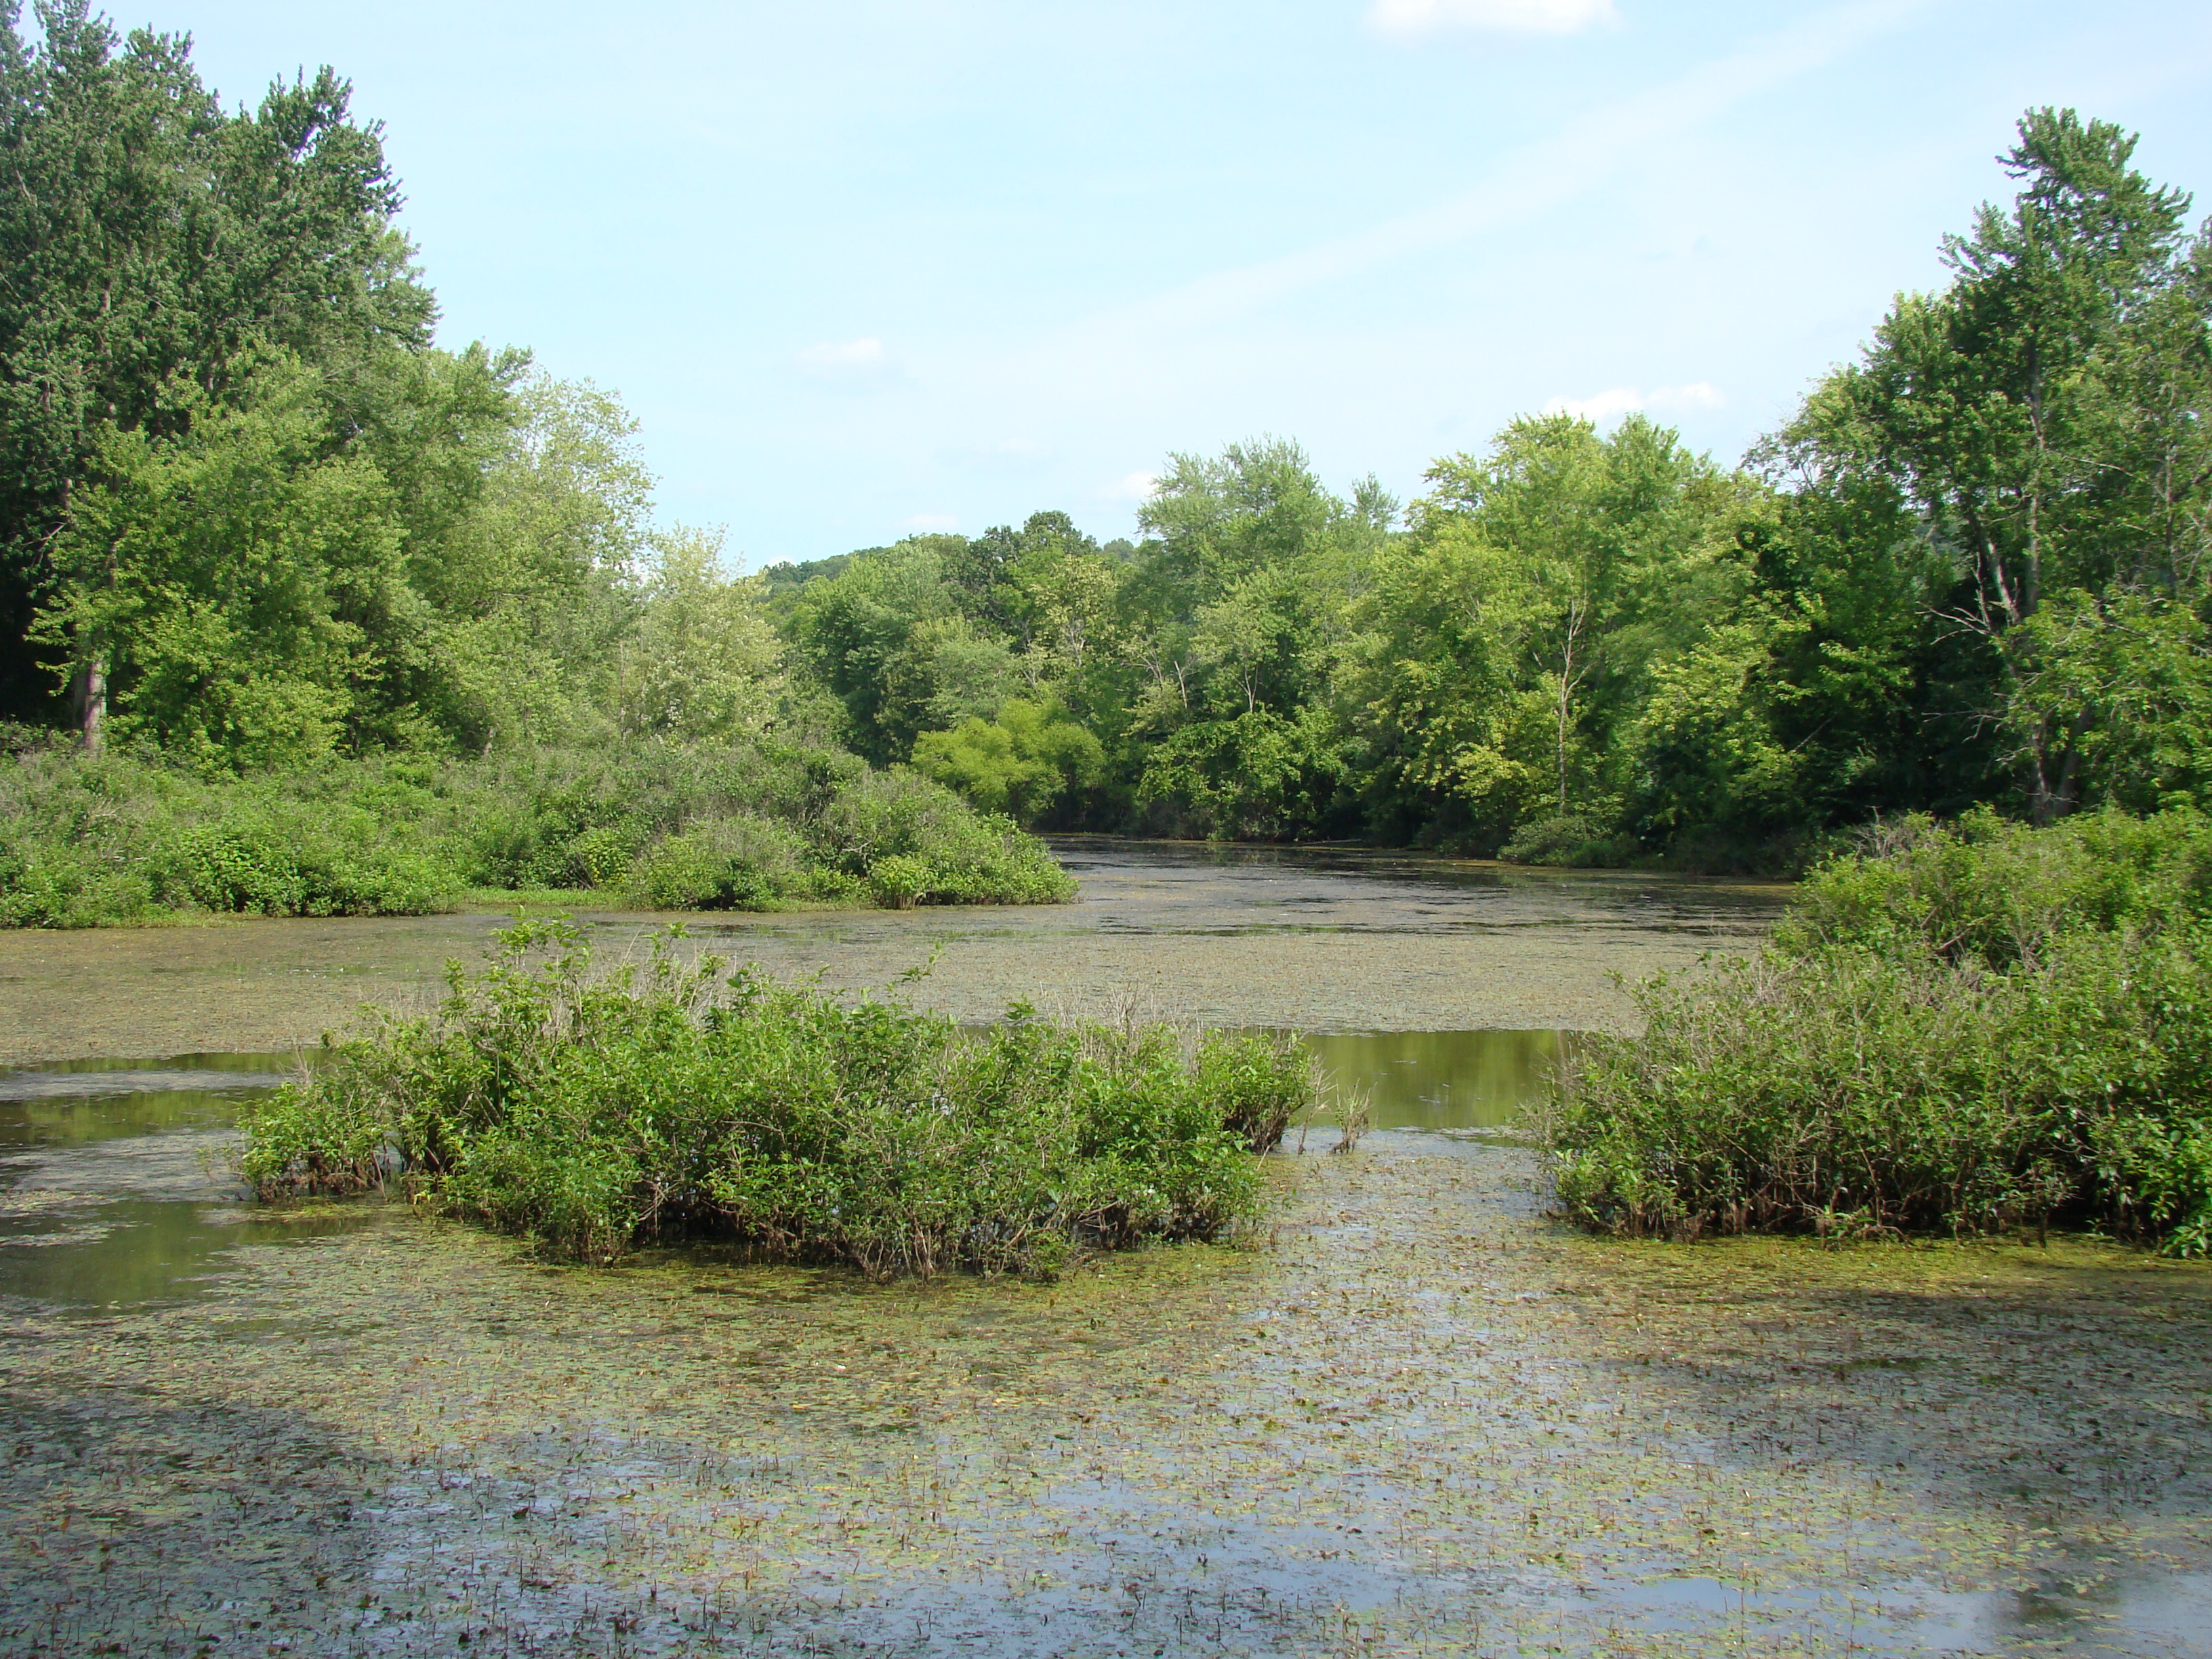 Kessler swamp state nature preserve photo